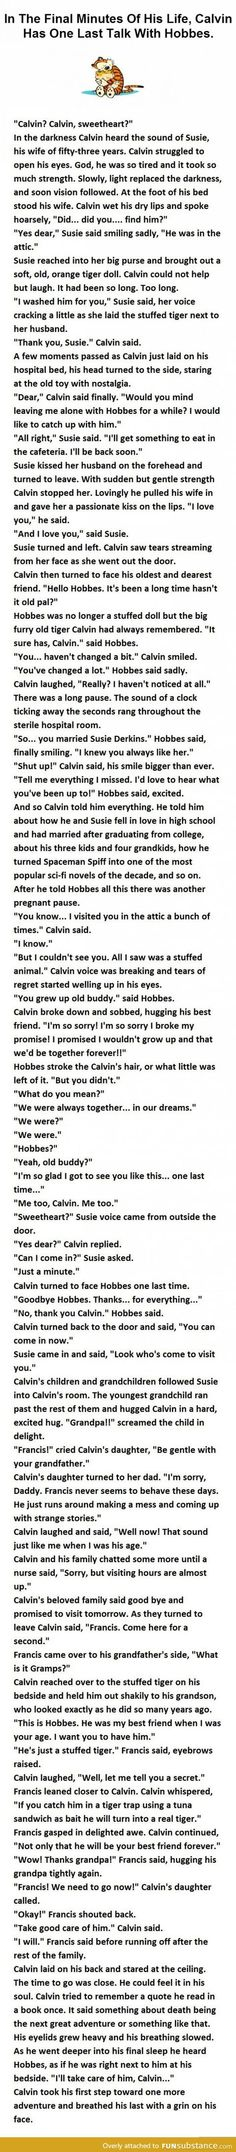 Calvin and Hobbes...It's Beautiful                                                                                                                                                                                 More